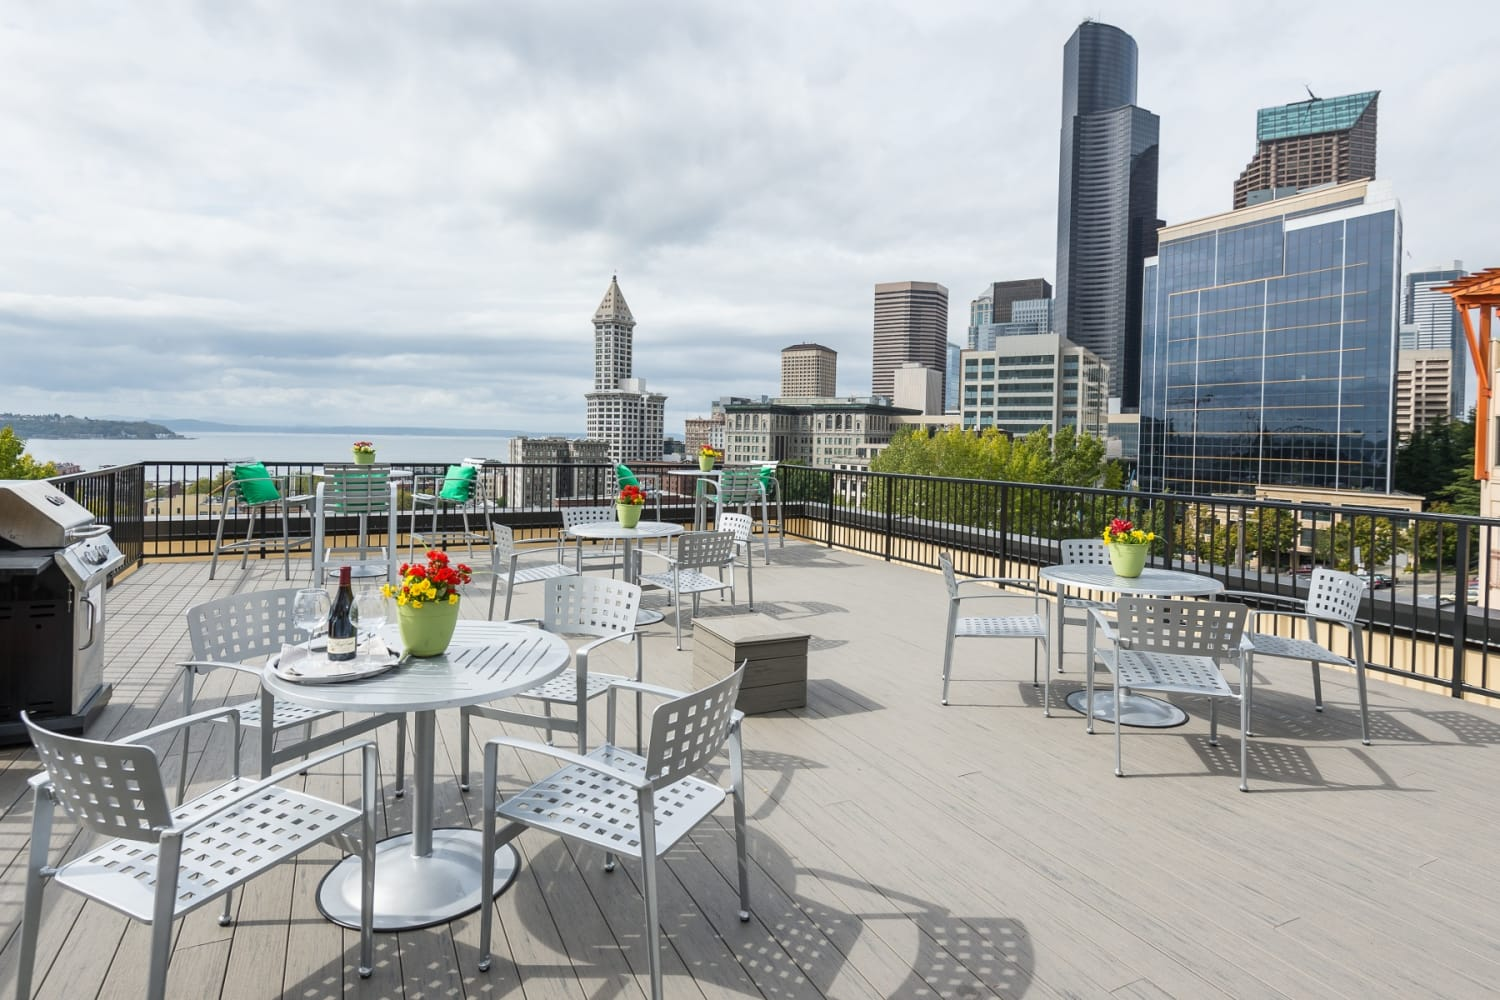 Rooftop views of Puget Sound at Metropolitan Park Apartments in Seattle, Washington